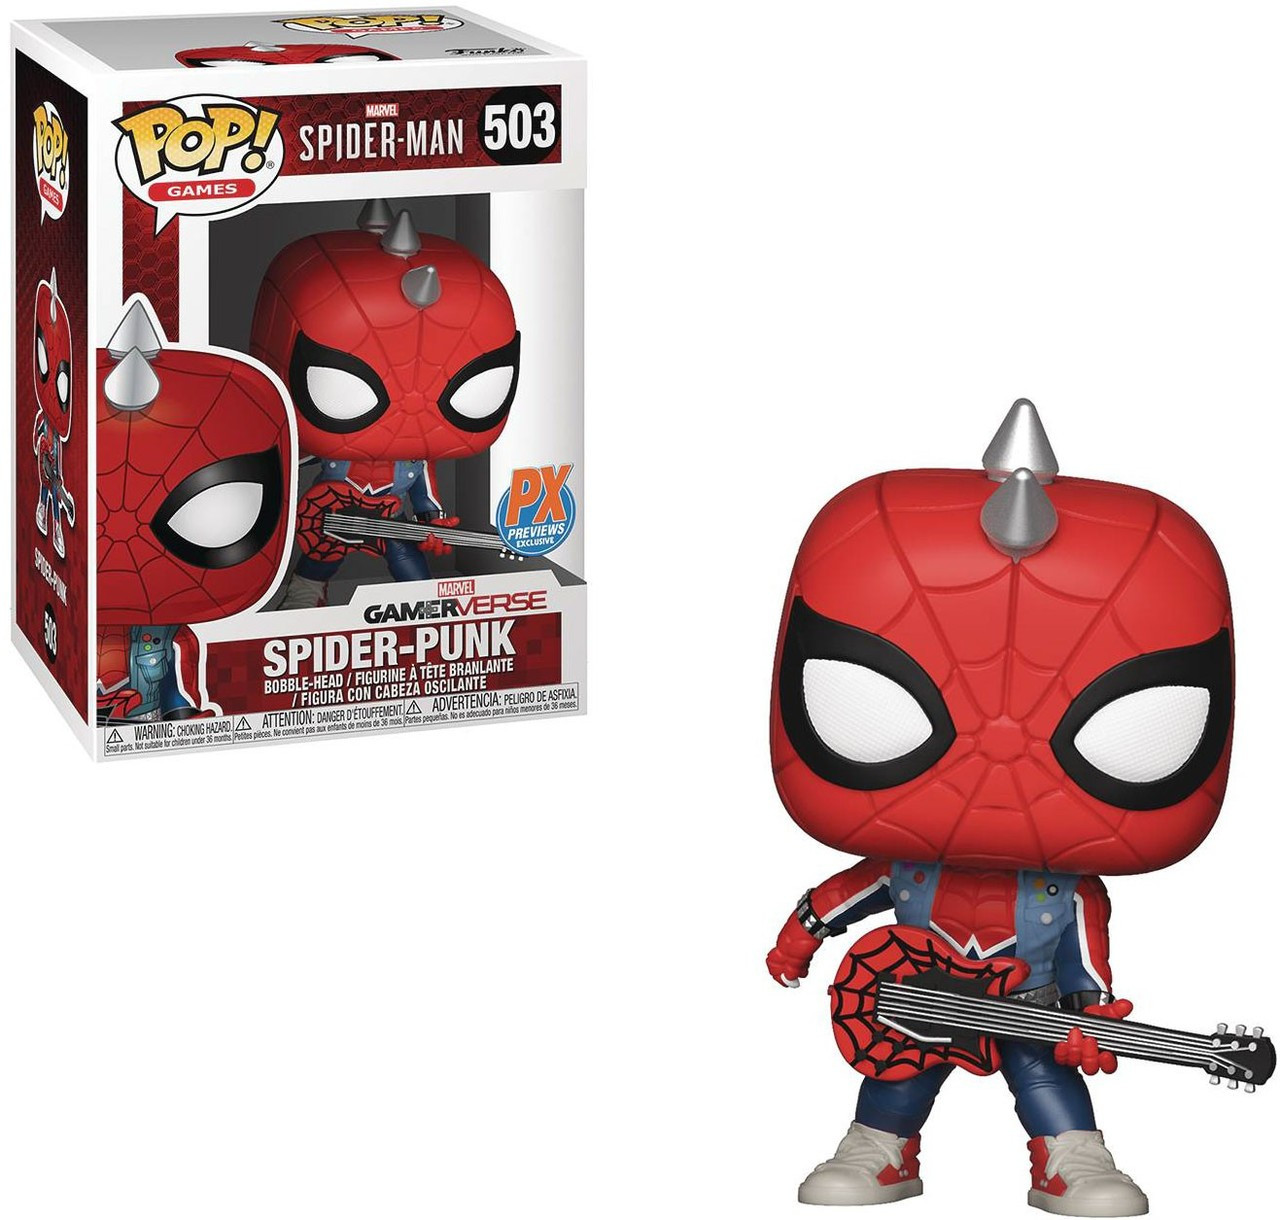 Image result for pop spider punk